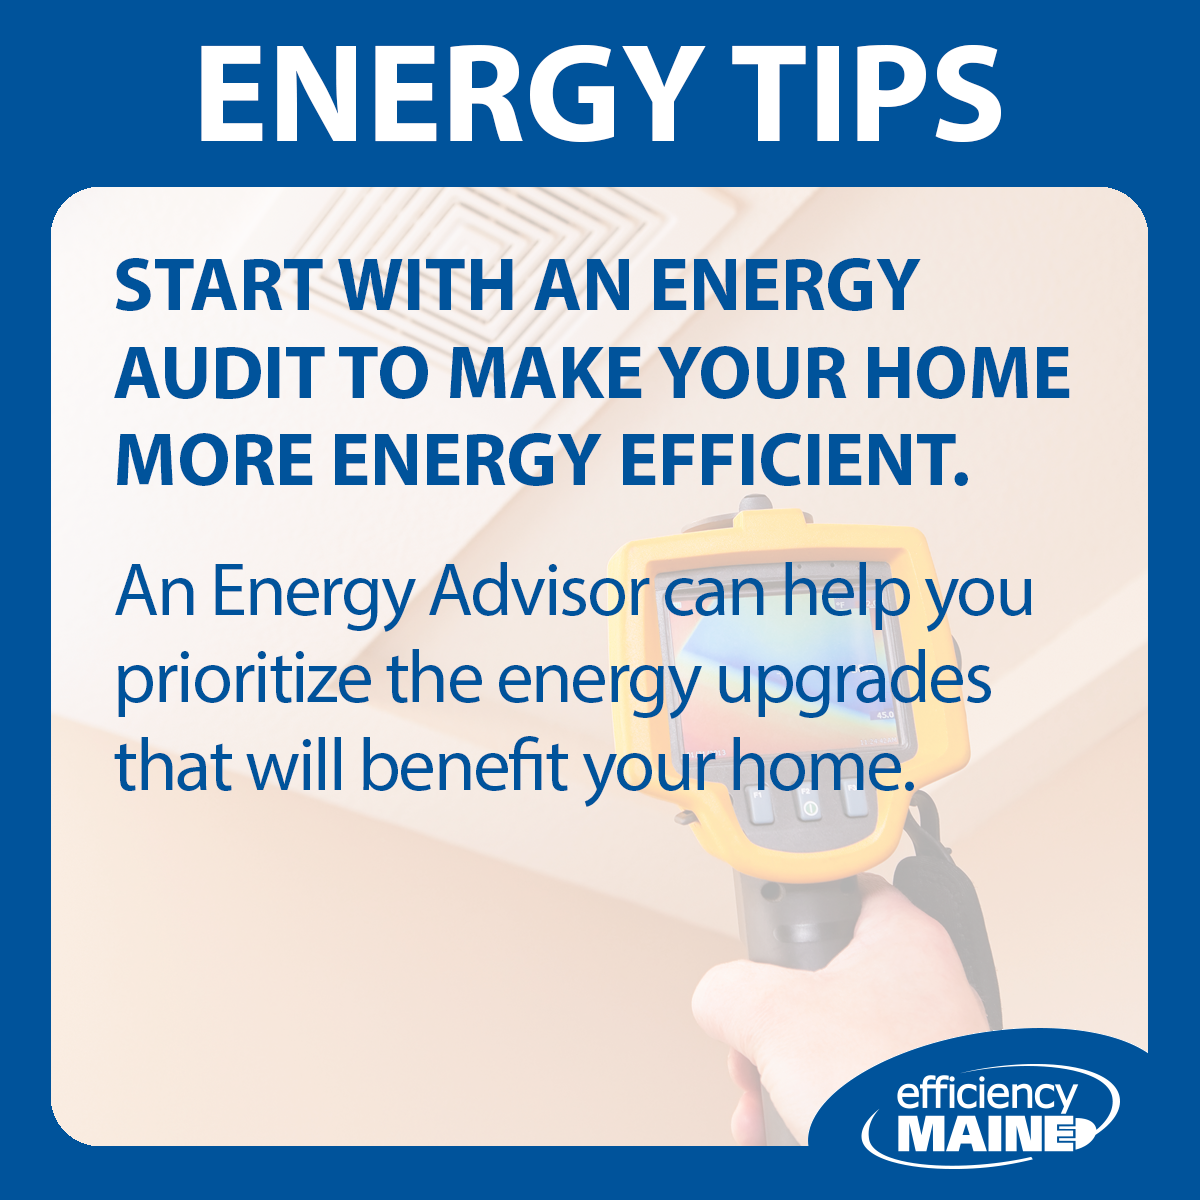 Want to Save? Start With an Energy Audit.